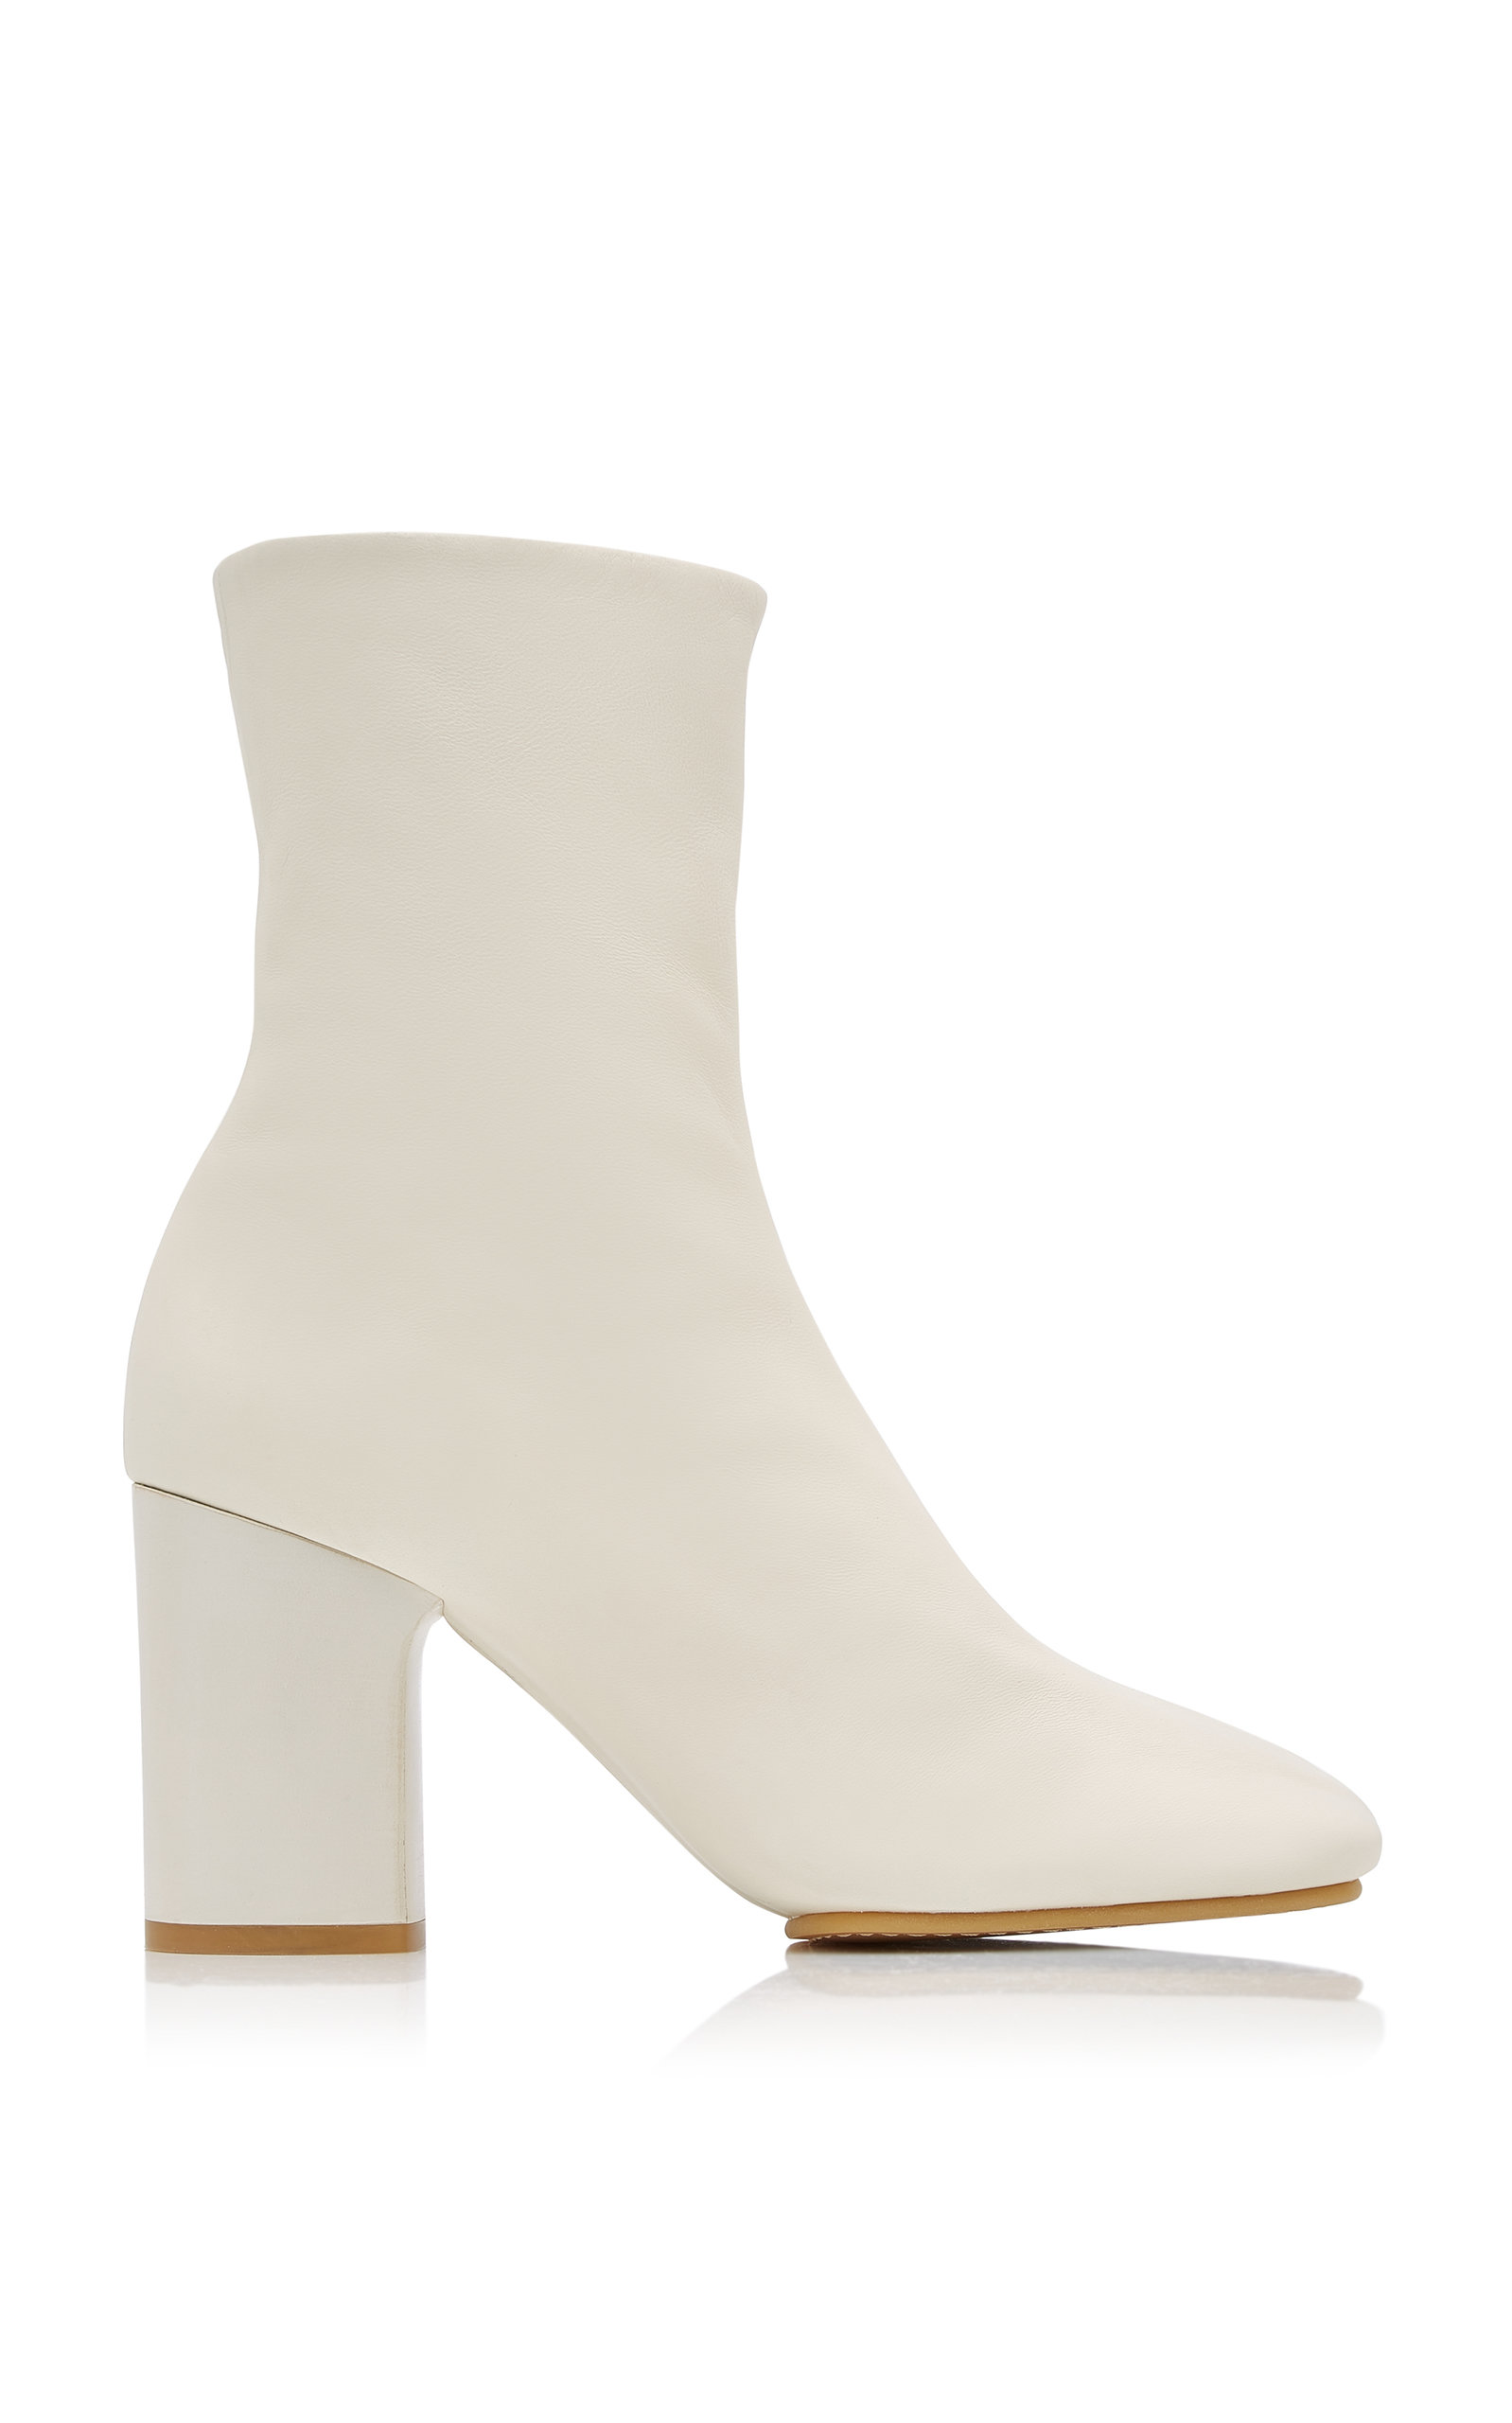 ACNE STUDIOS BATHY LEATHER ANKLE BOOTS